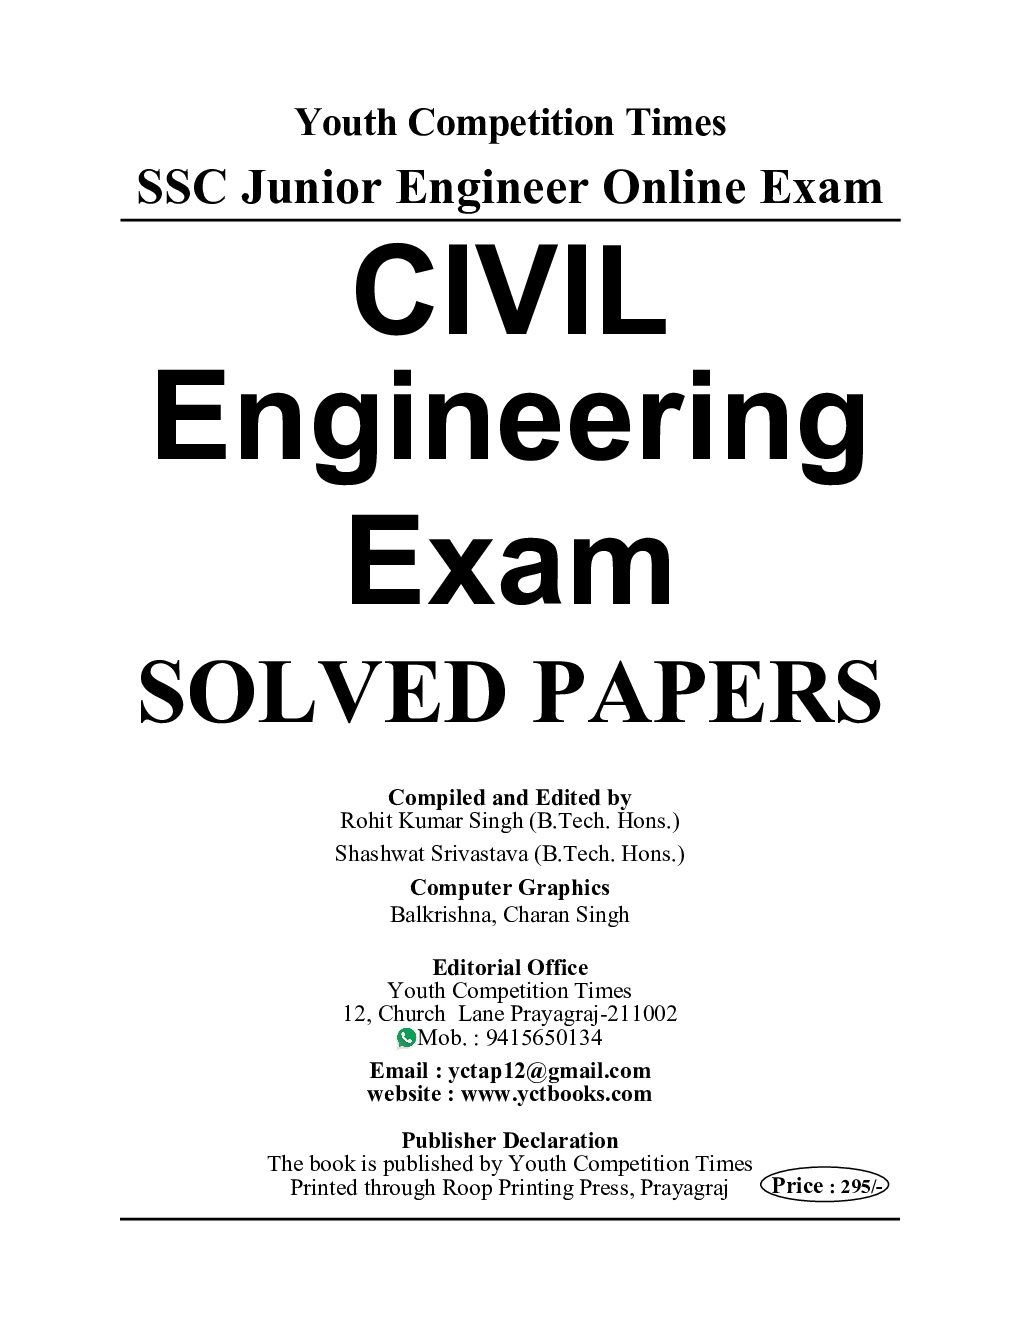 SSC JE Civil Engineering Solved Papers (2020) - Page 2